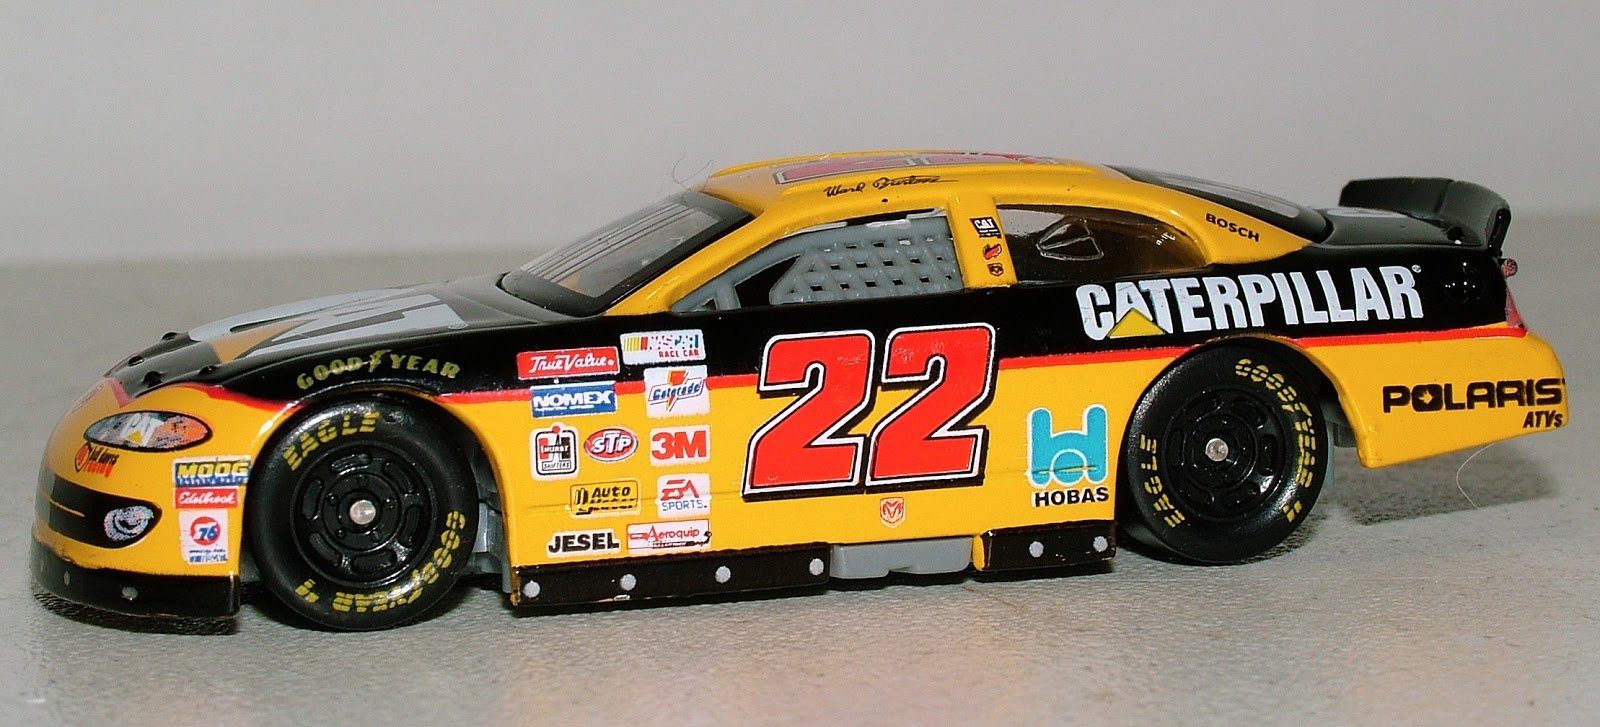 Nascar Die Cast Cars Not My Thing But I Tried